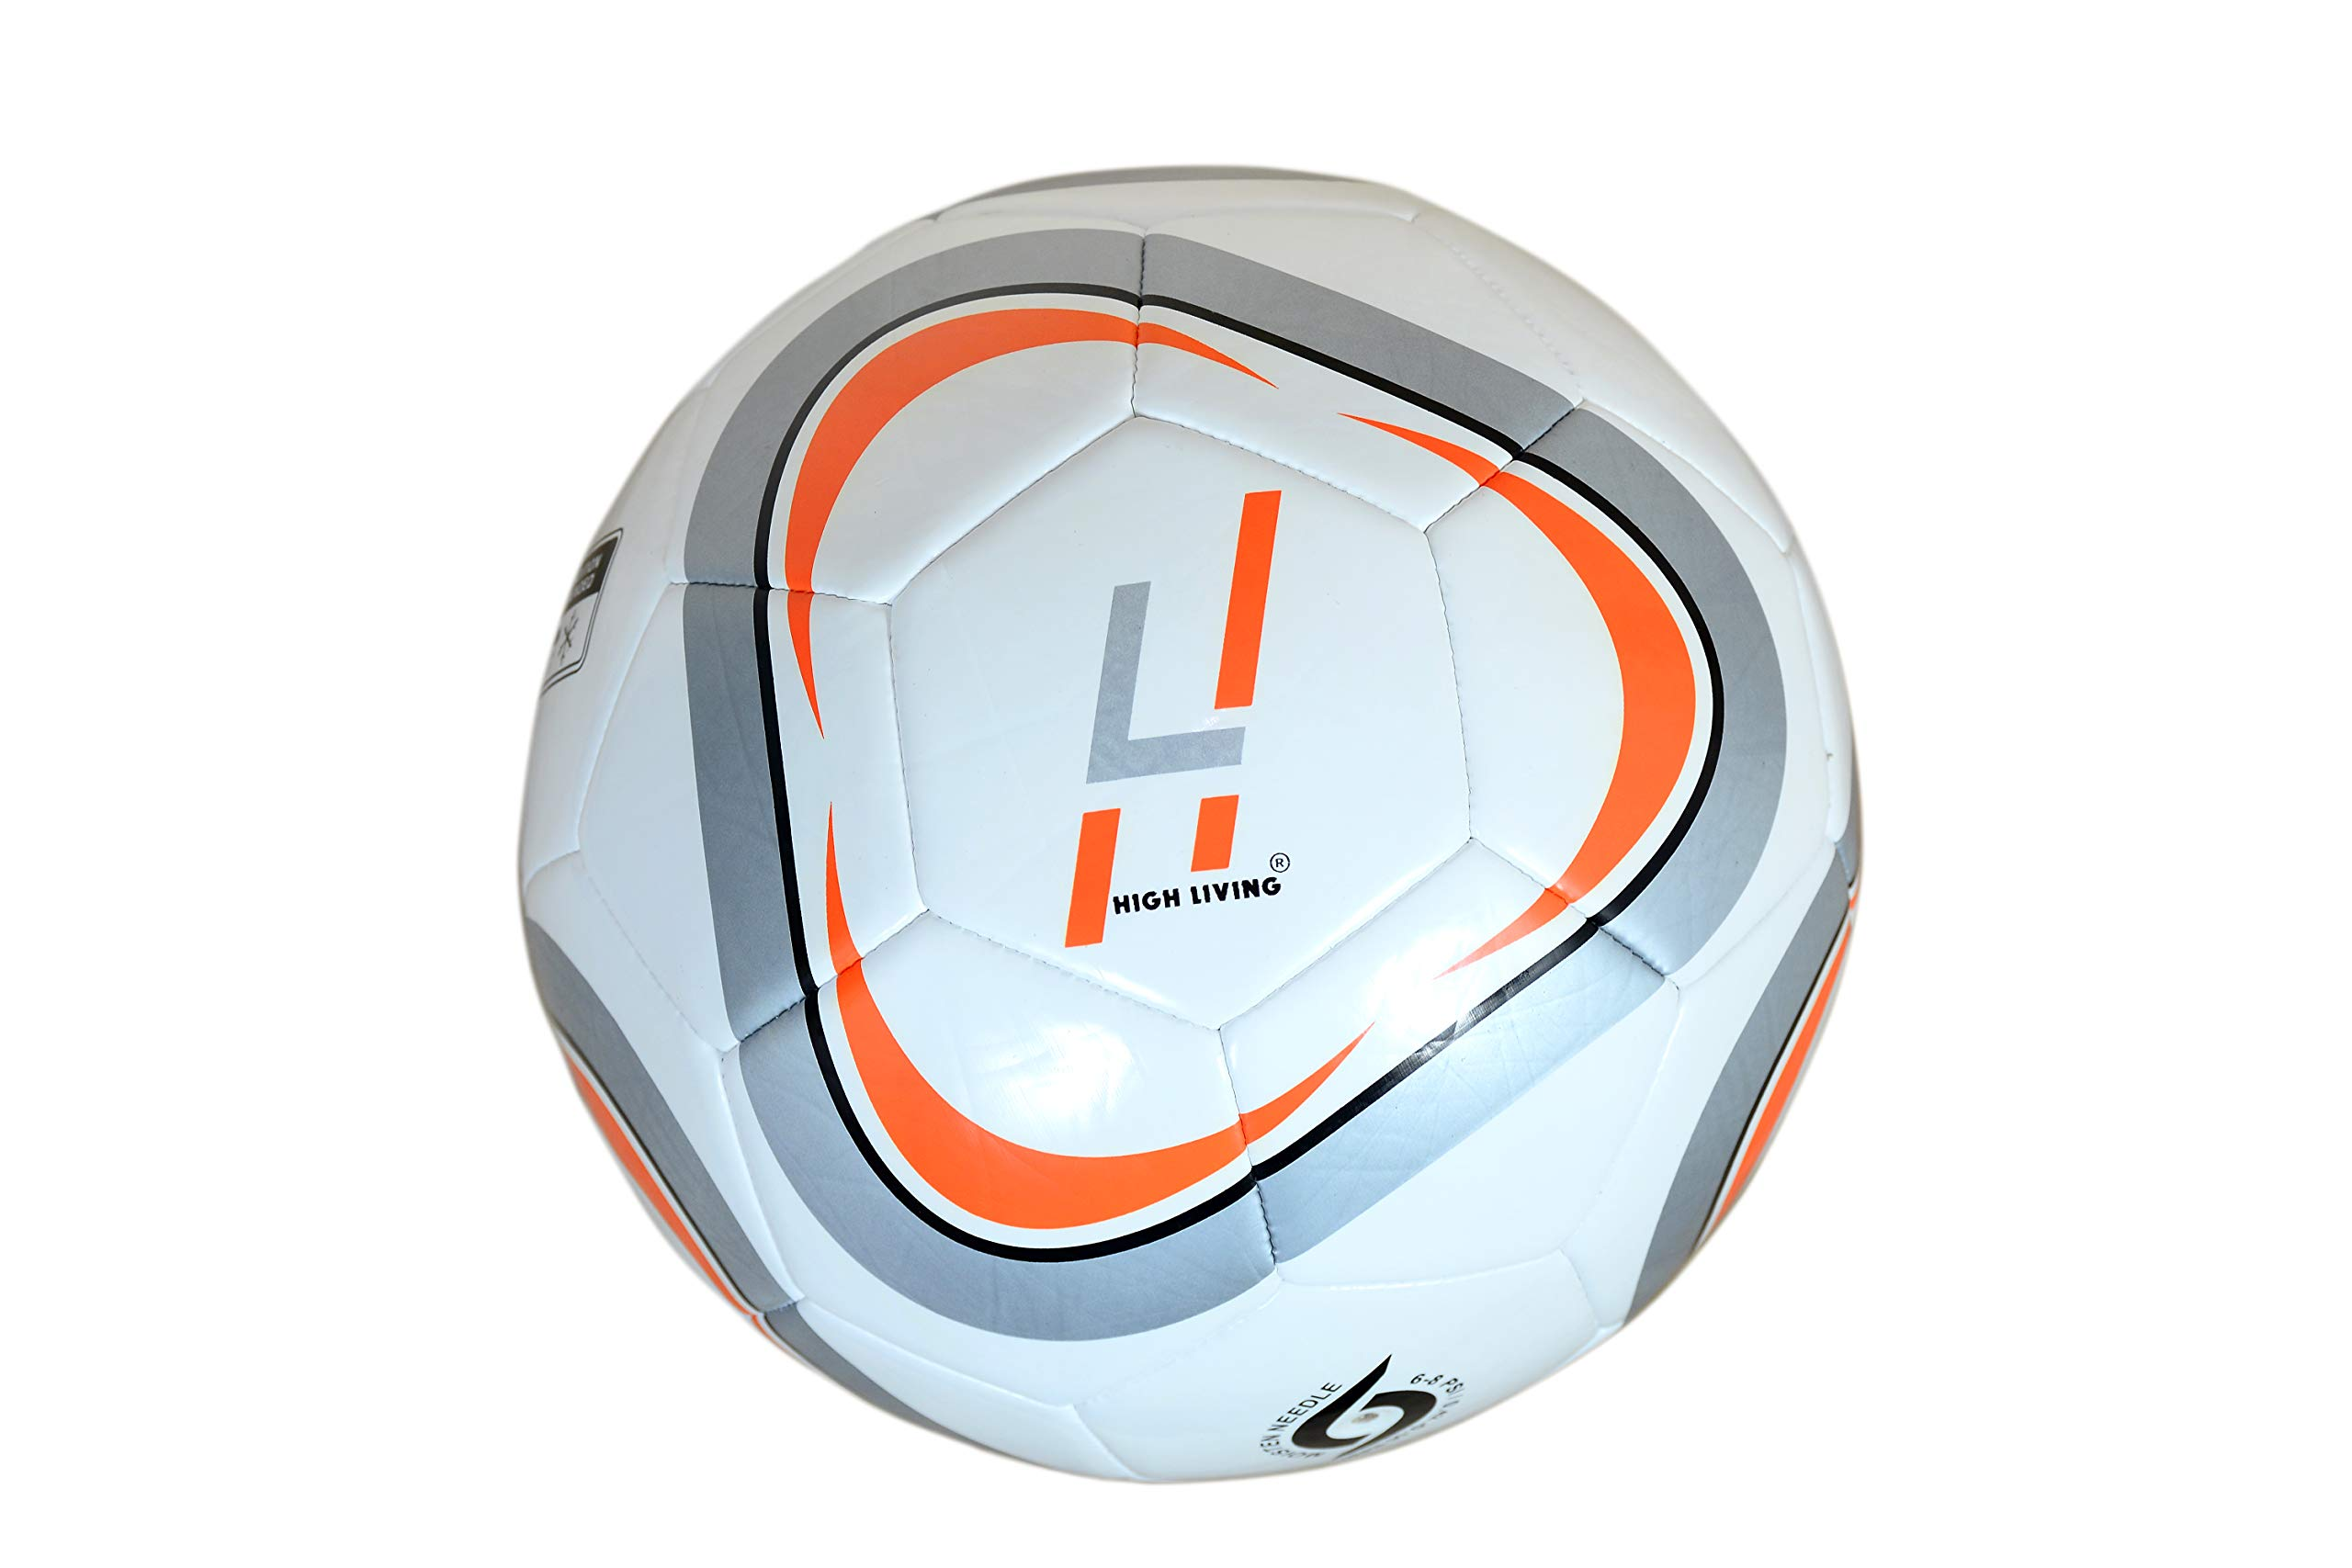 Highliving Football Size 5 Training Professional Club Team Indoor /& Outdoor Match Soccer Ball